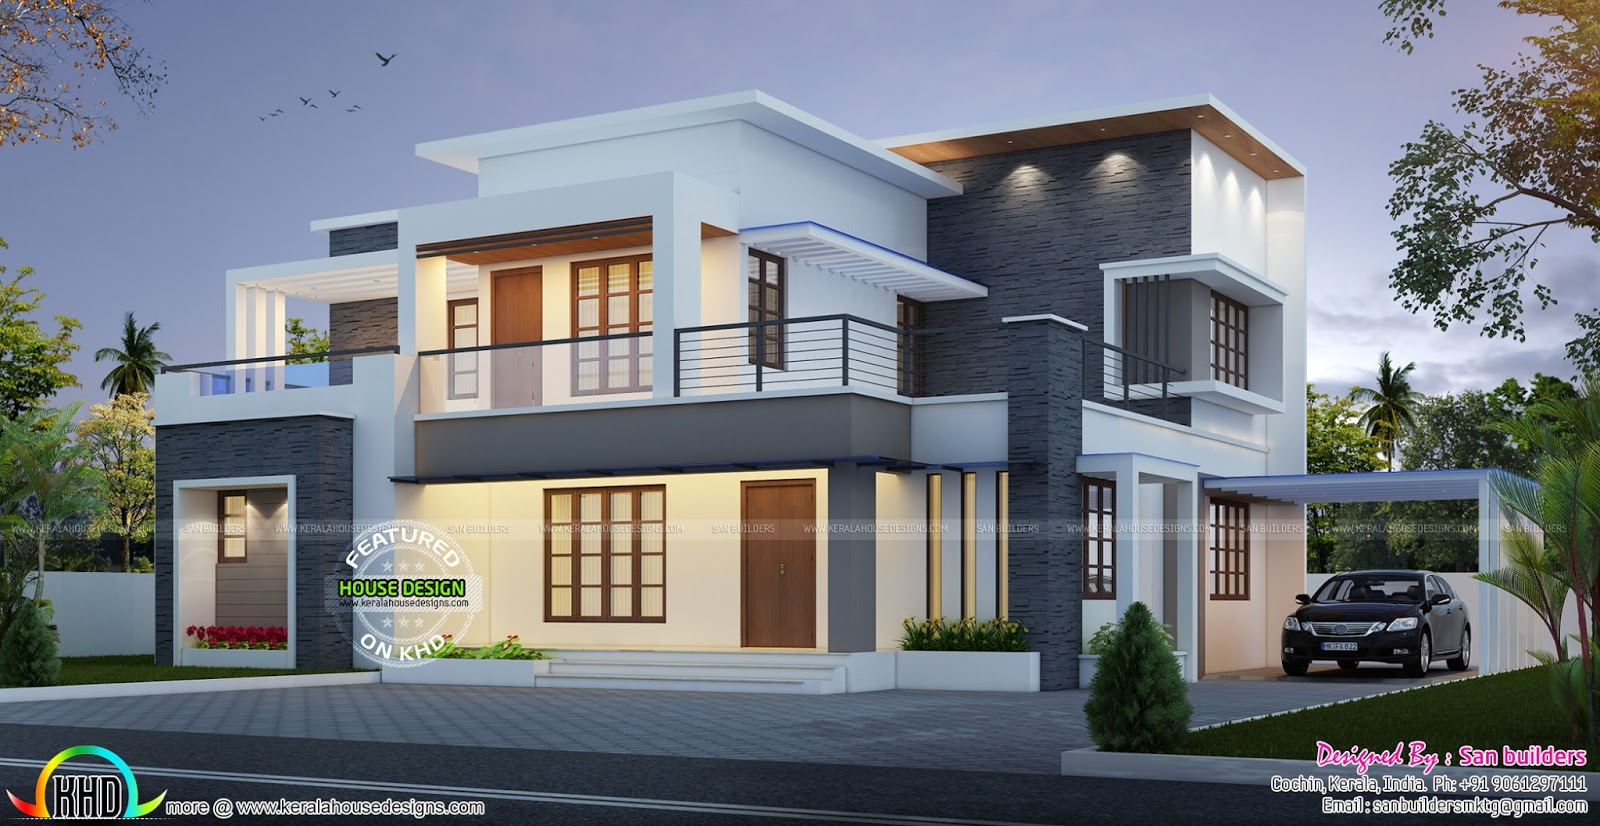 House plan and elevation by san builders kerala home for Home plans and designs